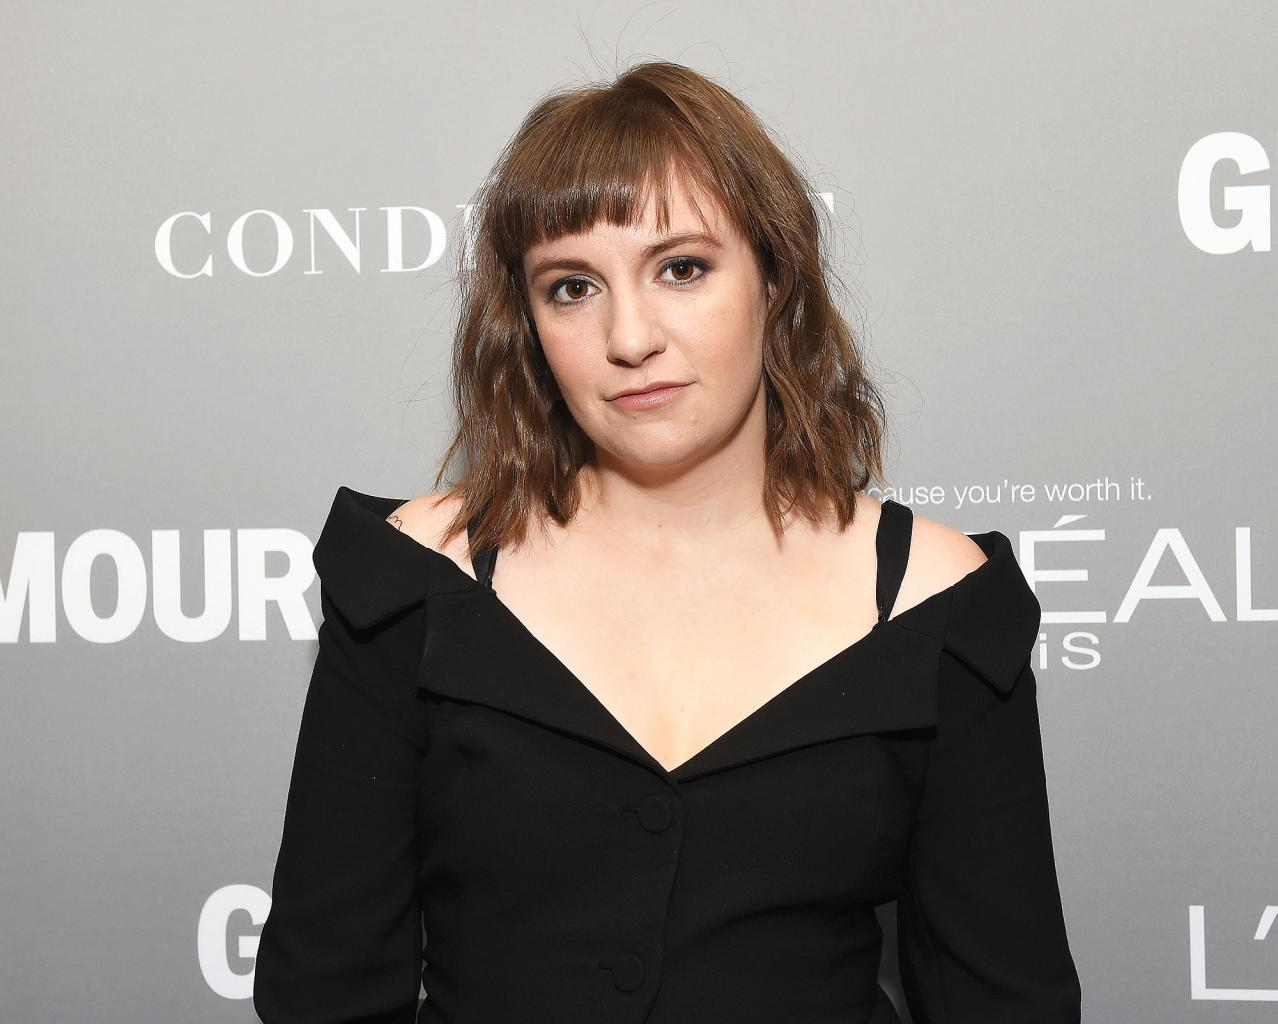 Lena Dunham Discusses Girls      '         Un    likable      '  Characters       '  and Reveals Why She       's        Really Proud of      '  Her Costars